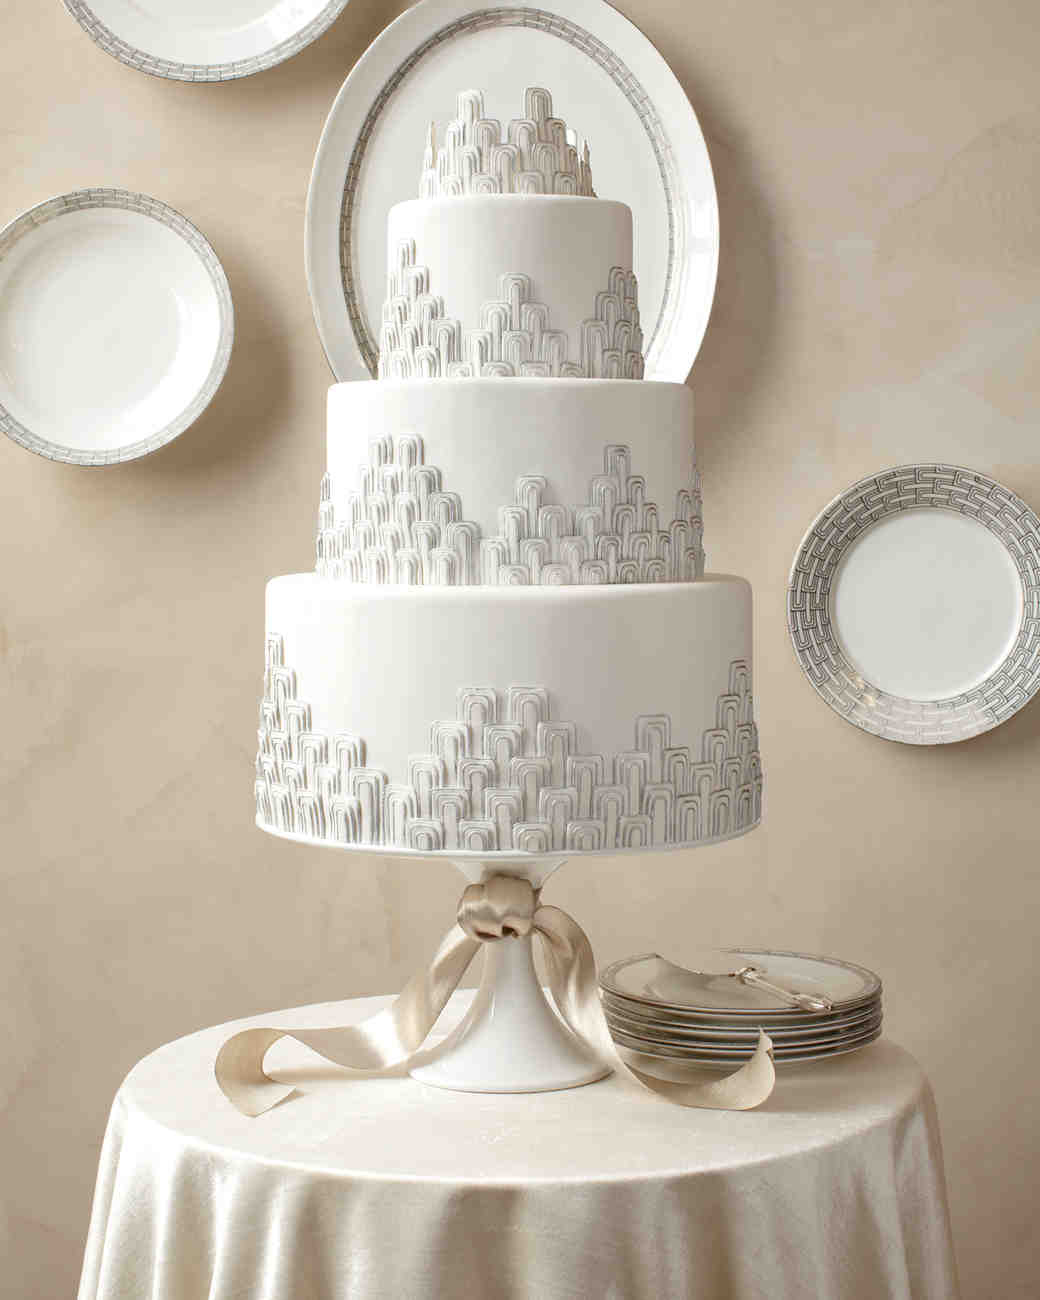 simple silver wedding cake ideas wedding cakes inspired by china patterns martha stewart 20018